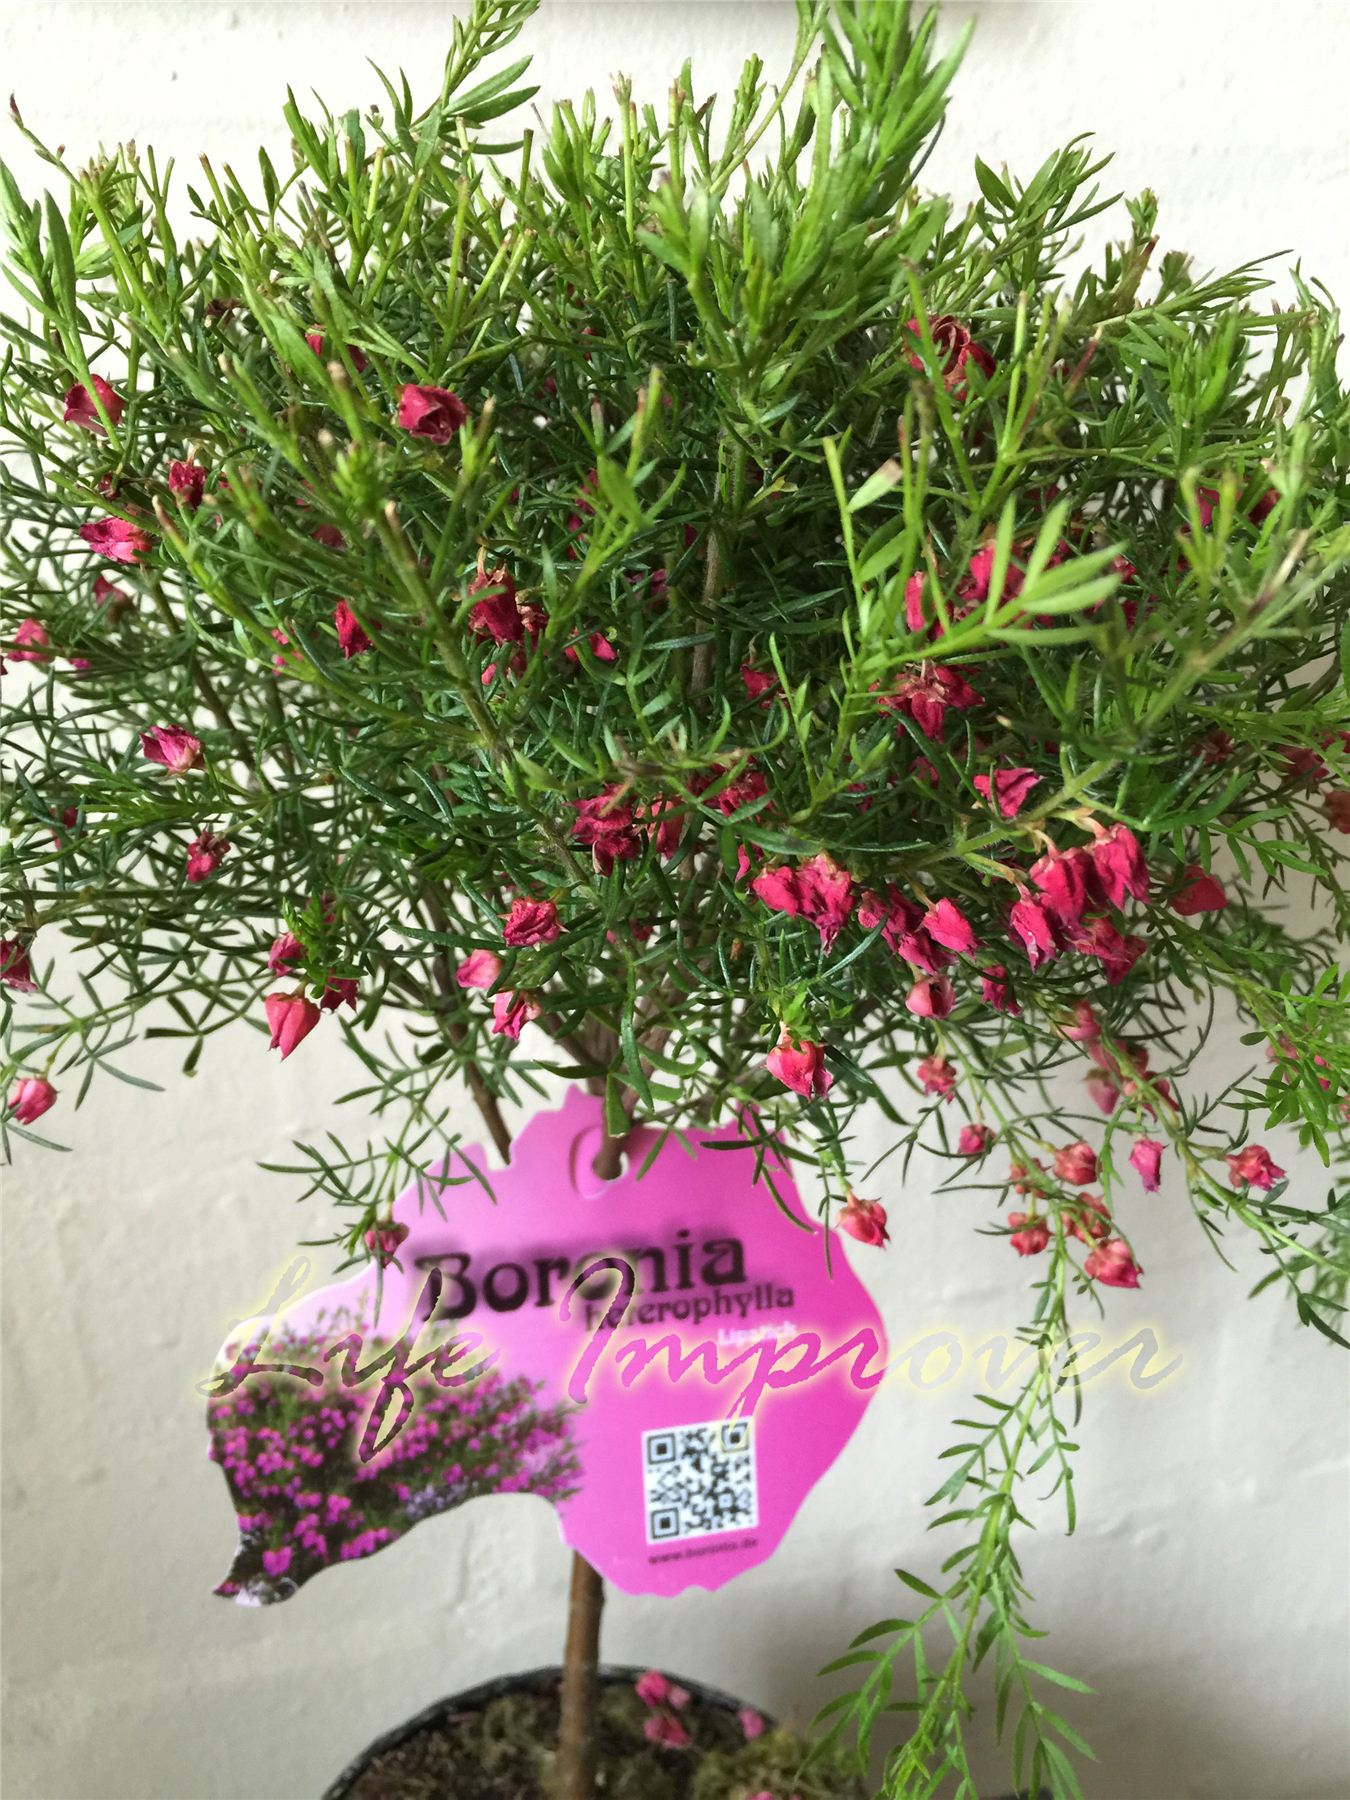 1 hardy red boronia heterophylla lipstick outdoor garden for Plants for outdoor garden